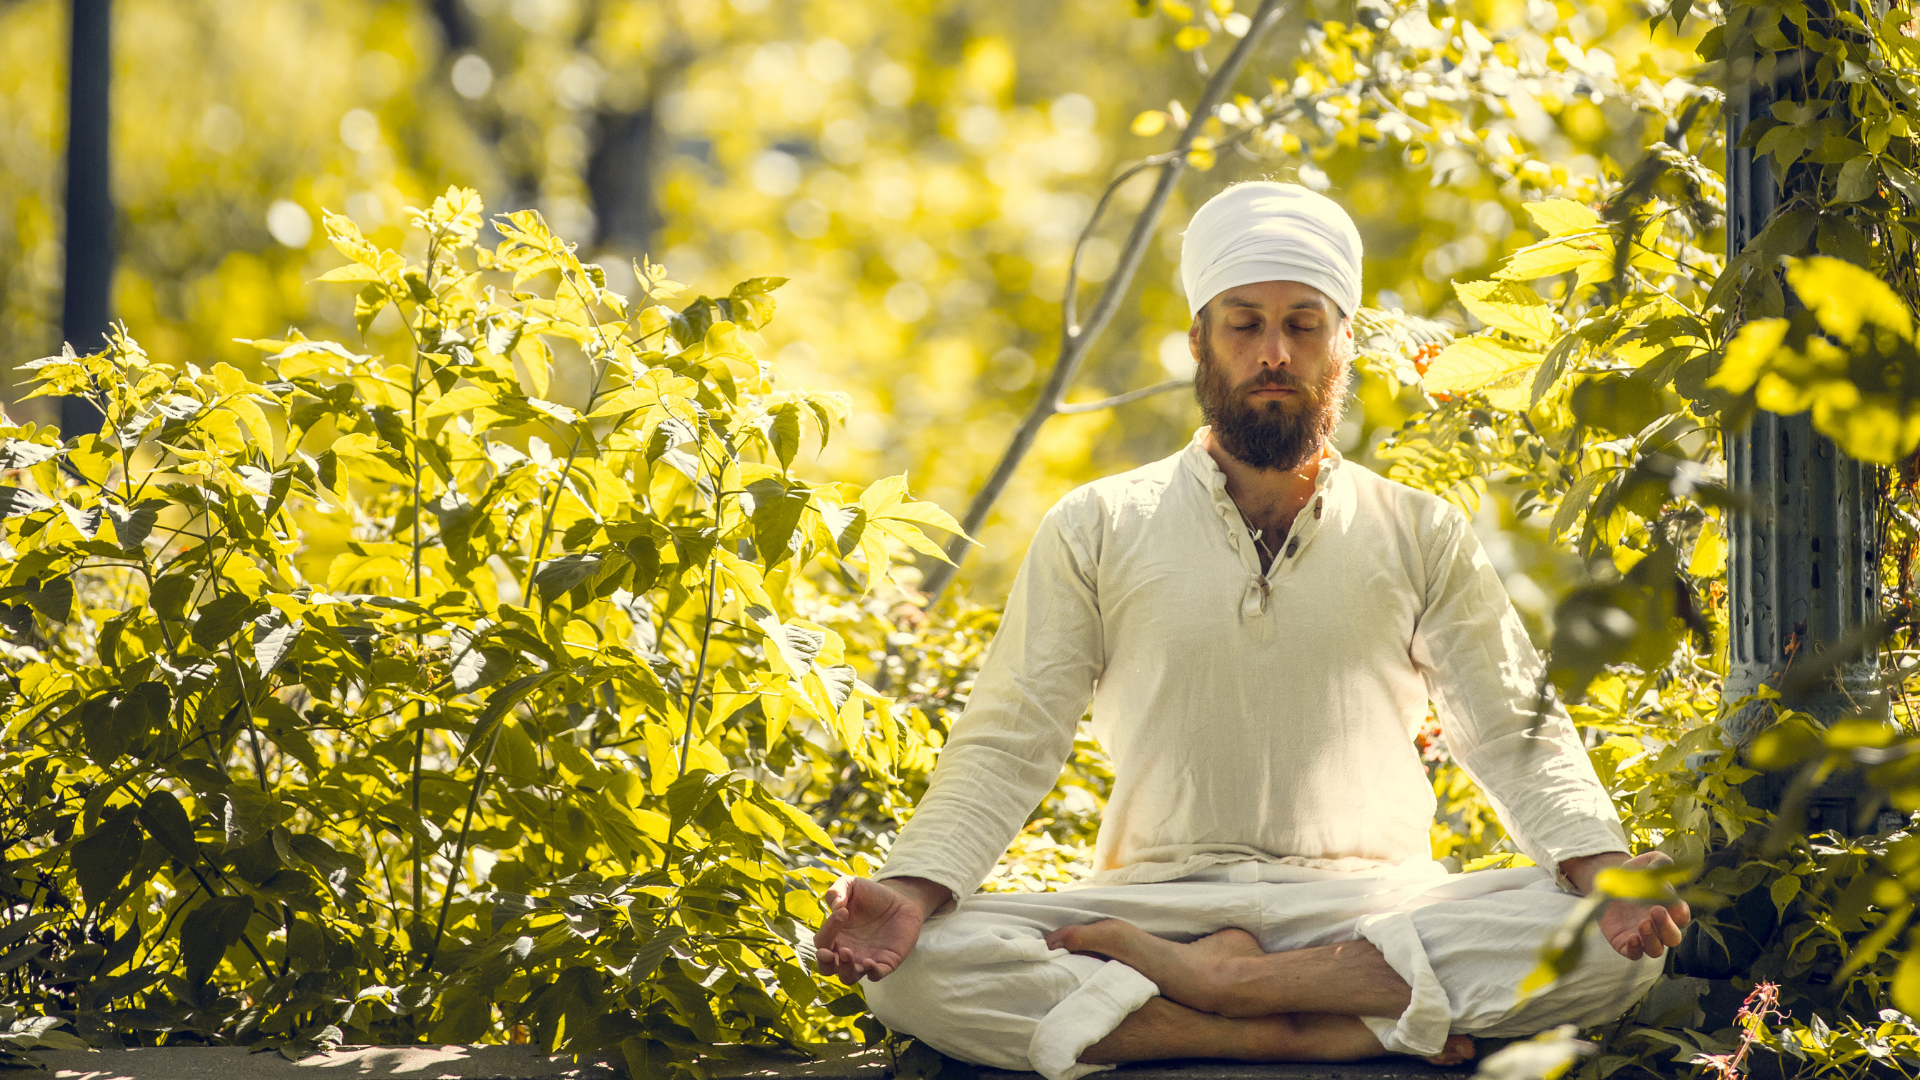 desintoxication clarte purification  yoga kundalini en français